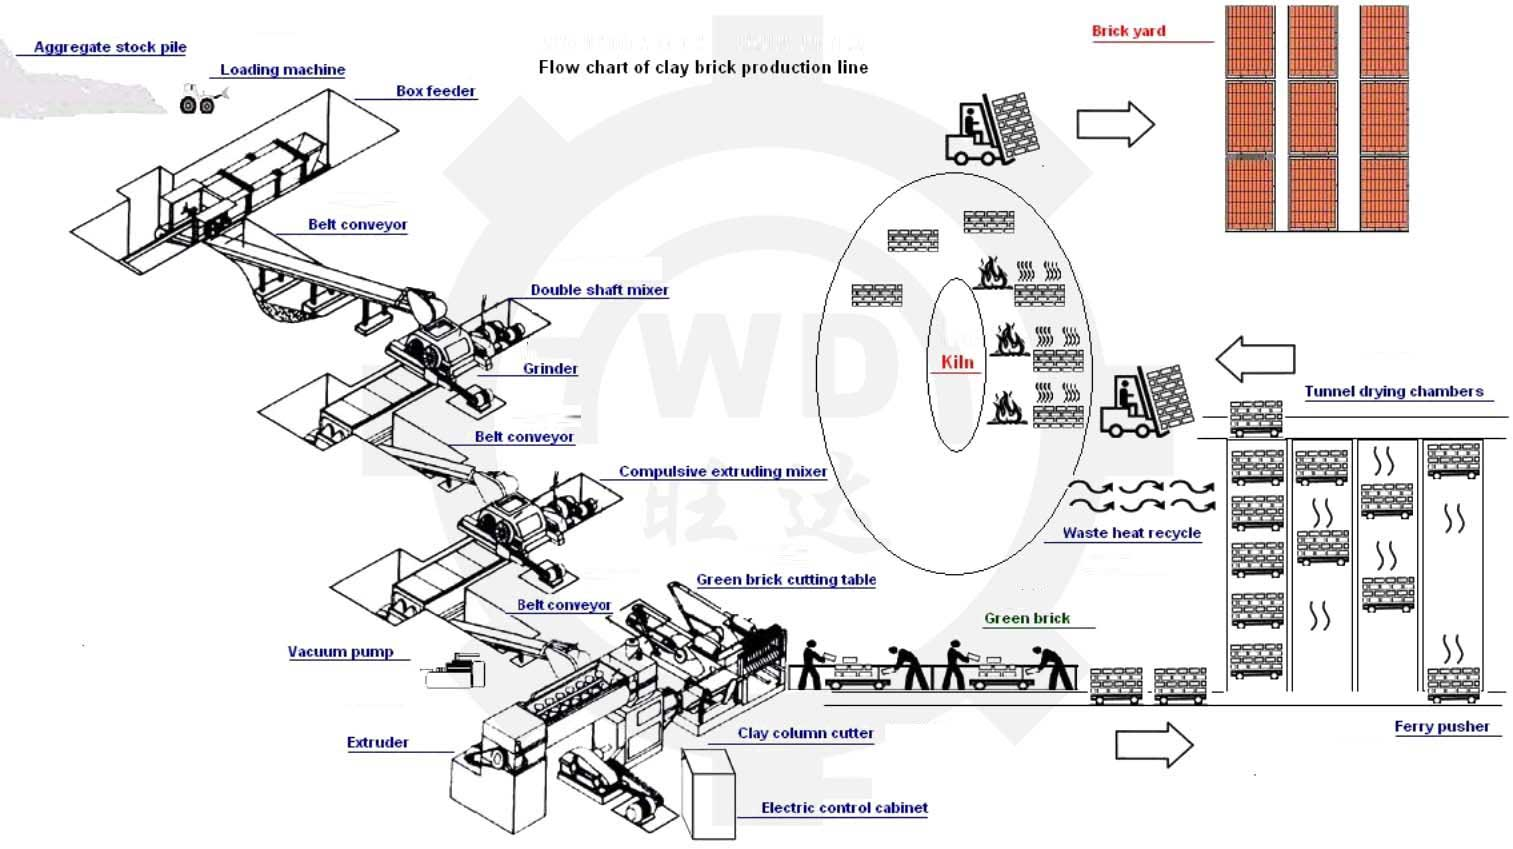 20-30 Million Clay Brick Production Line